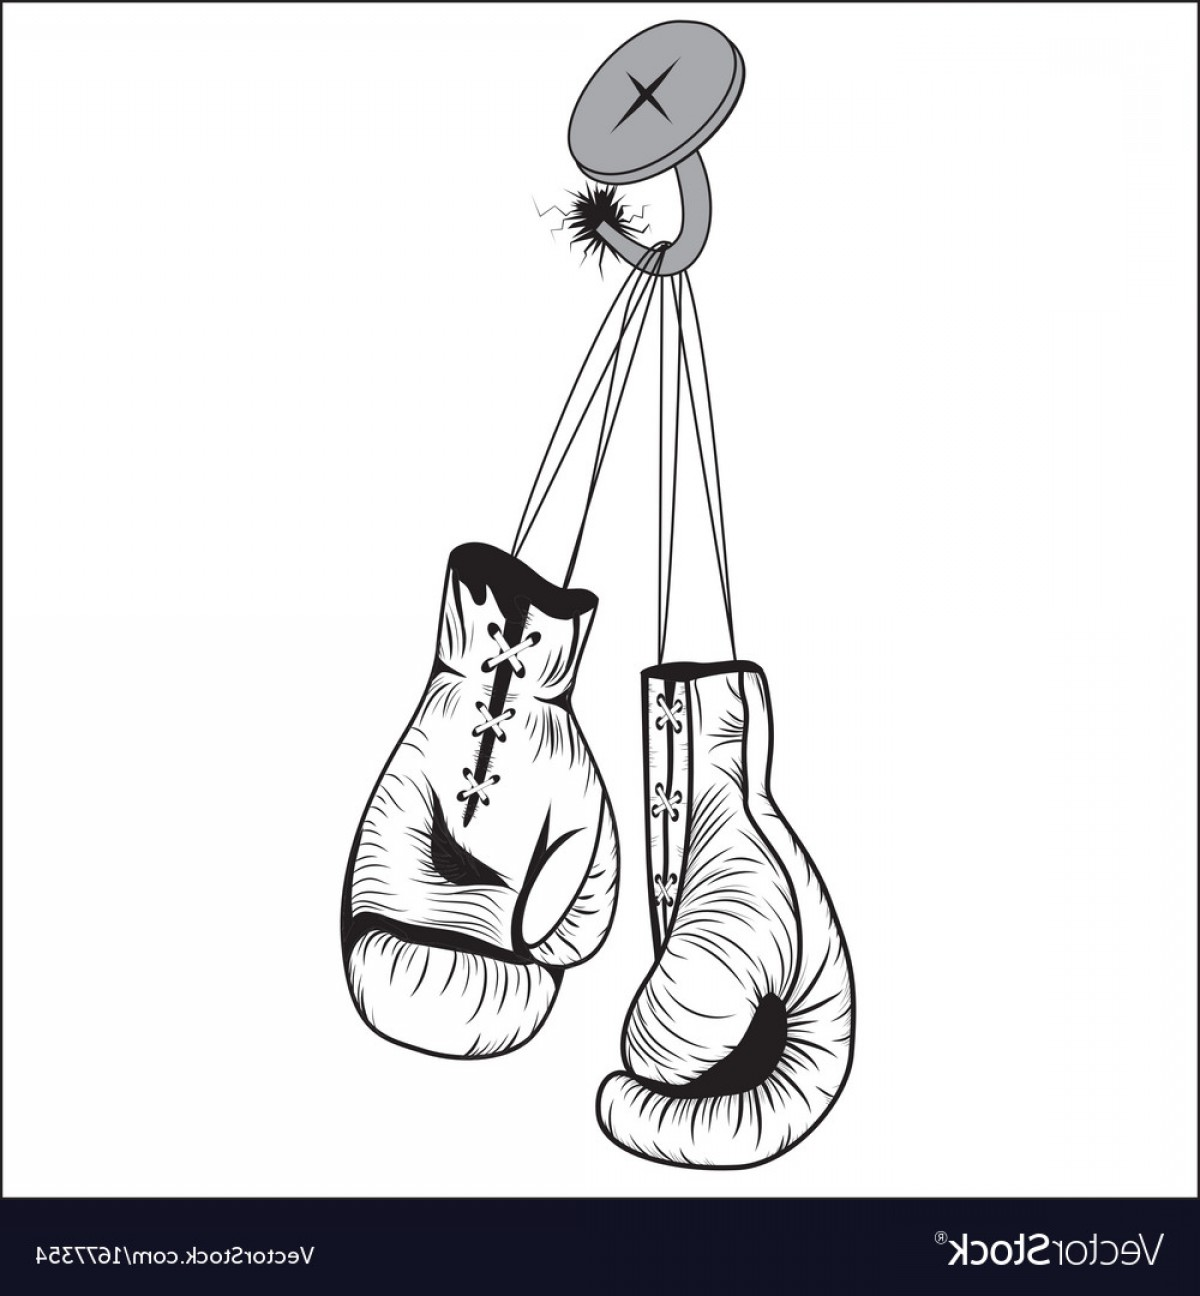 Pictures Of Boxing Gloves Vector Art: Boxing Gloves Hang With Laces Nailed To Wall Vector